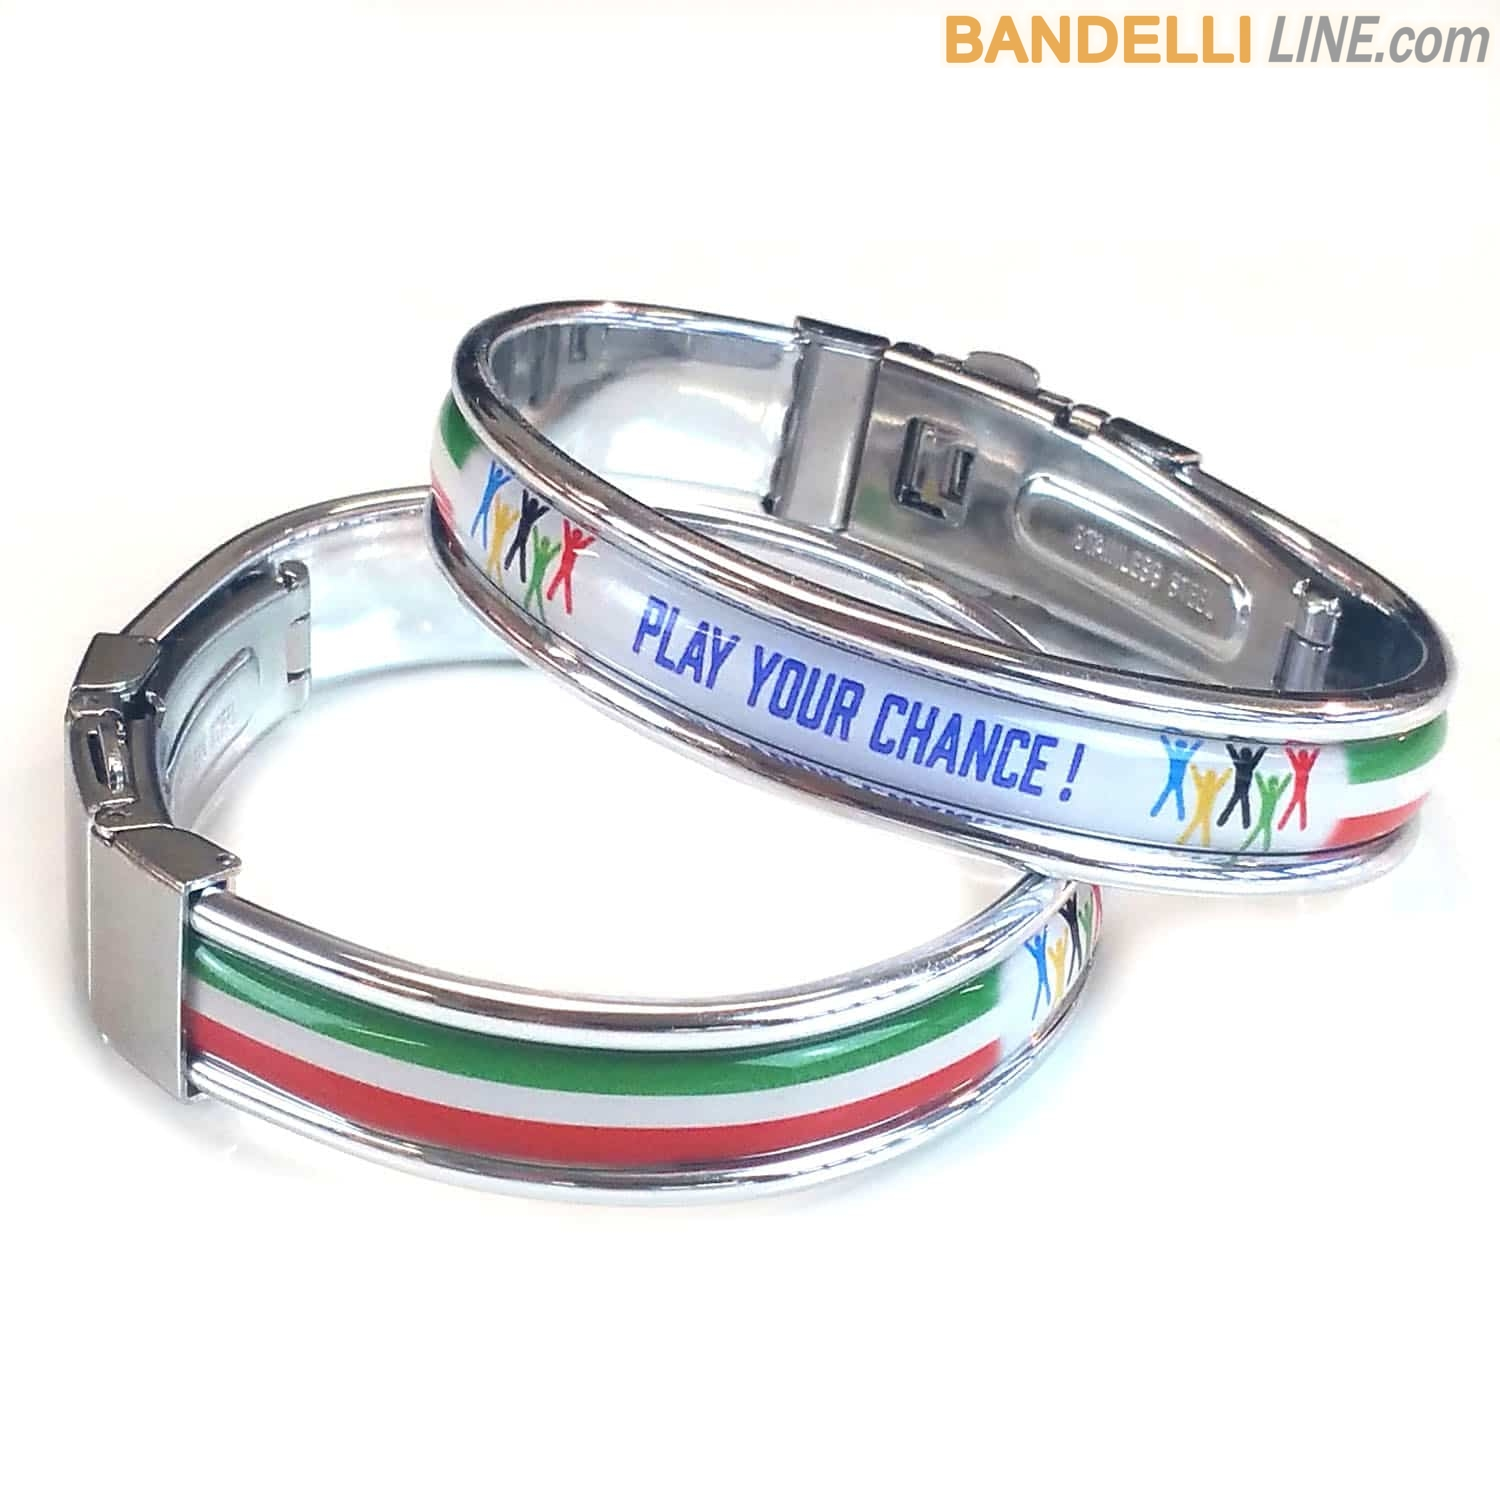 Braccialetto Tricolore Play Your Chance !